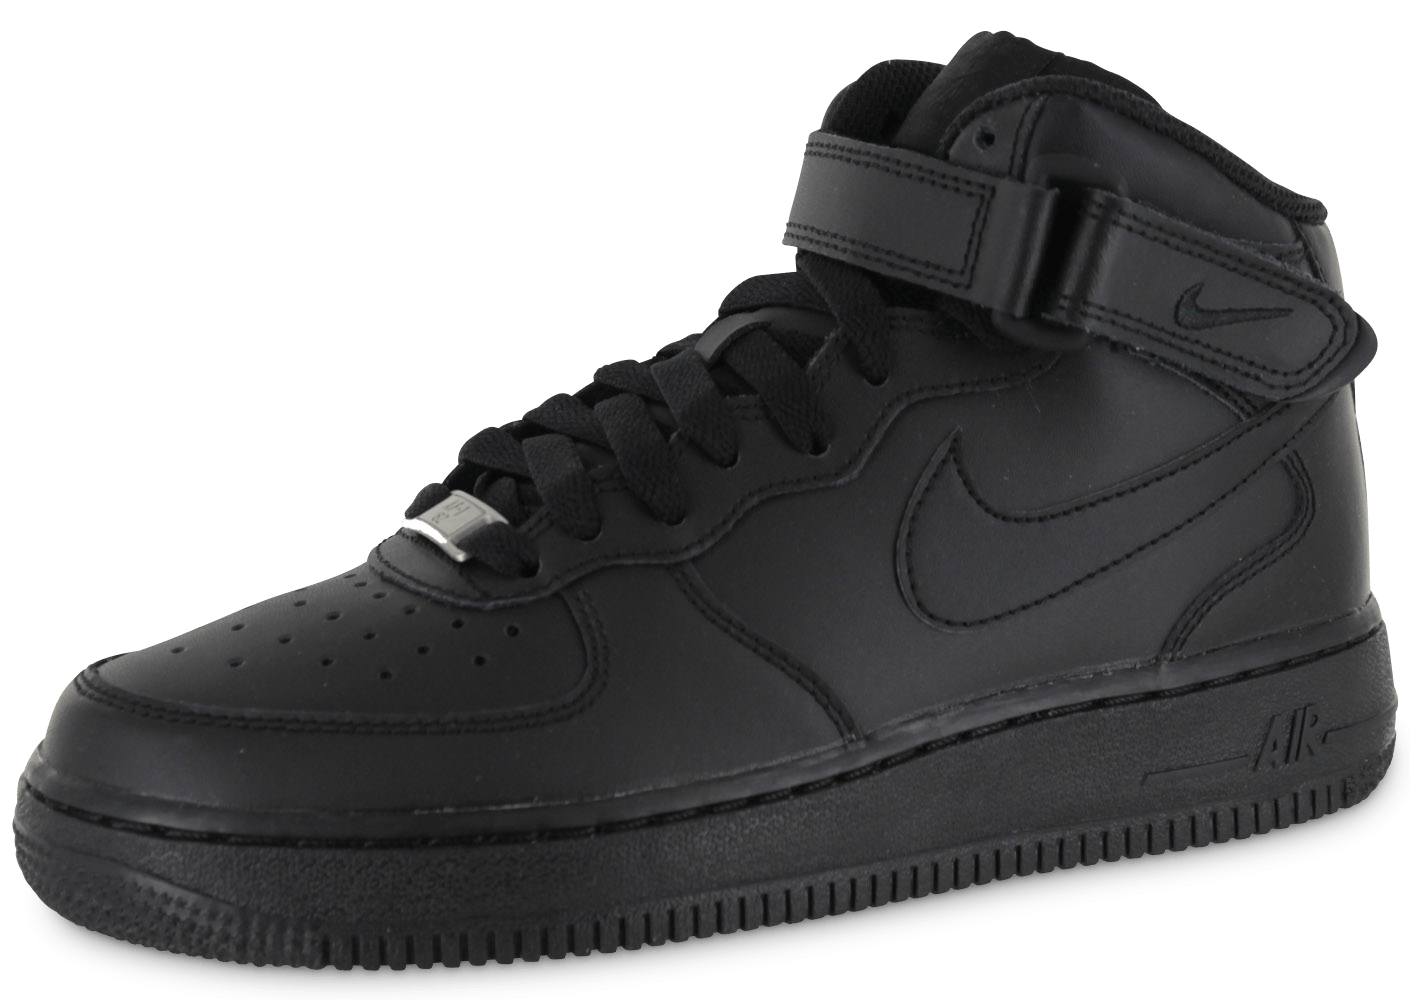 nike air force 1 mid j triple black chaussures black friday chausport. Black Bedroom Furniture Sets. Home Design Ideas